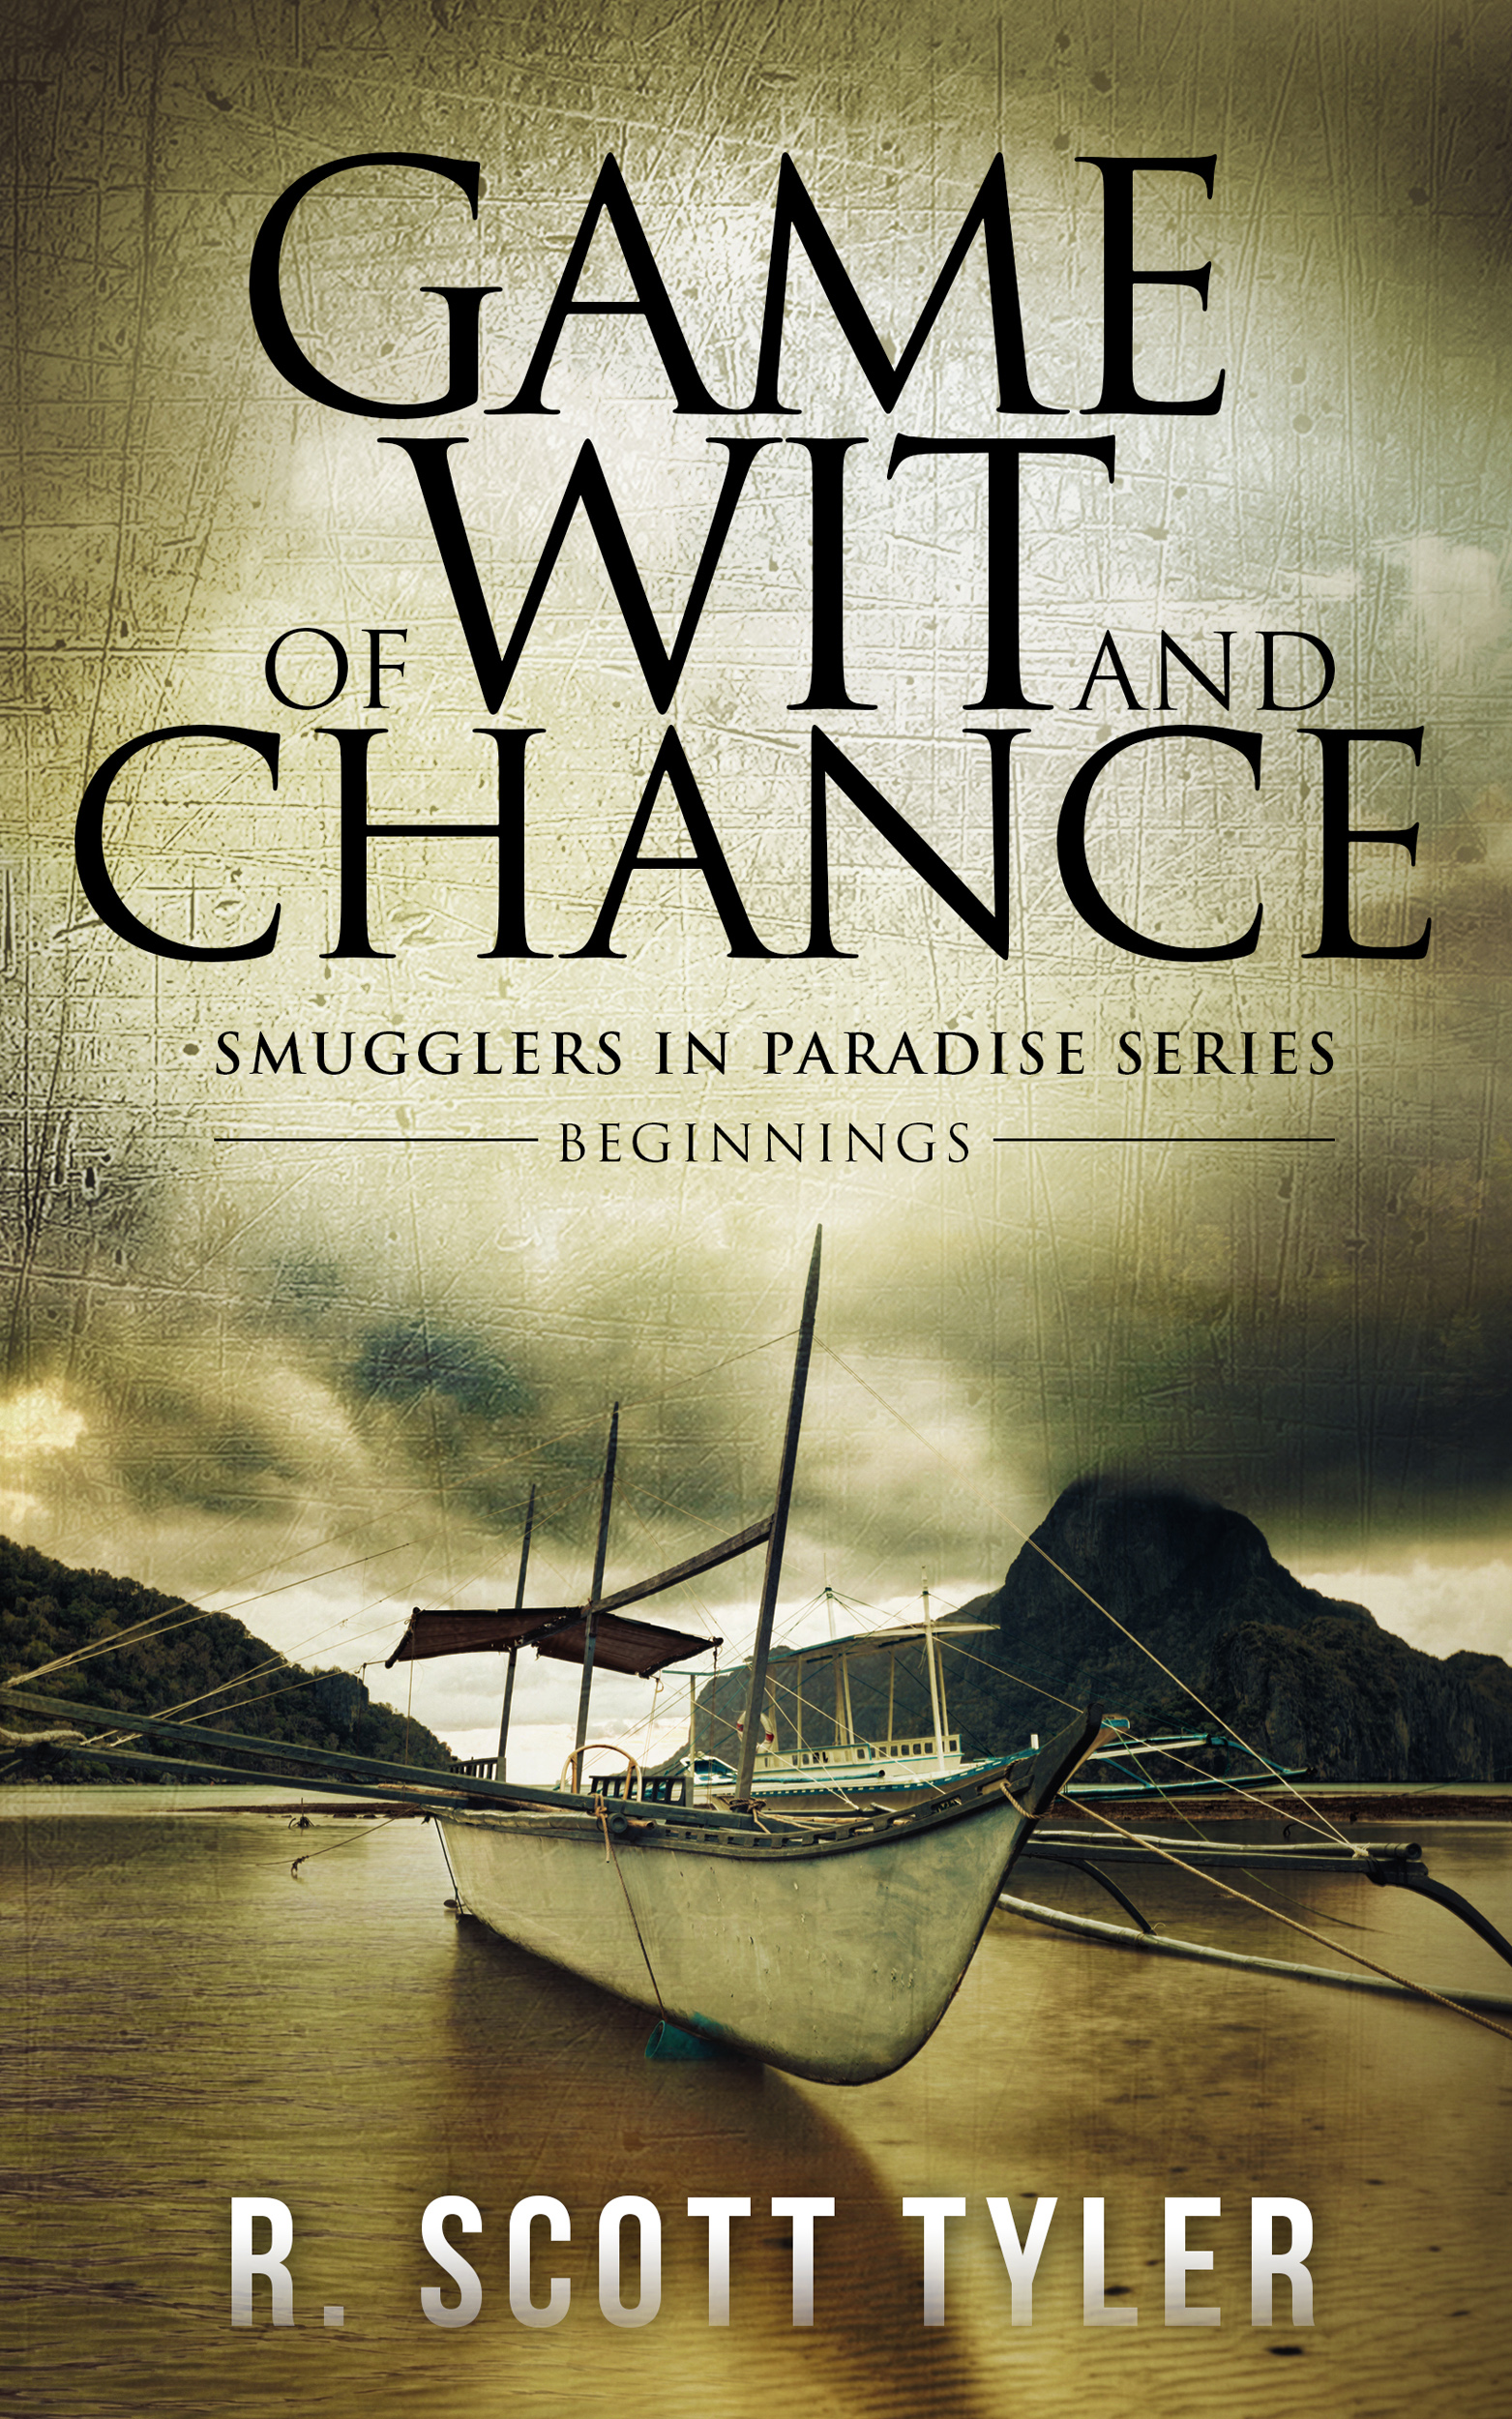 Game of Wit and Chance - final eBook cover